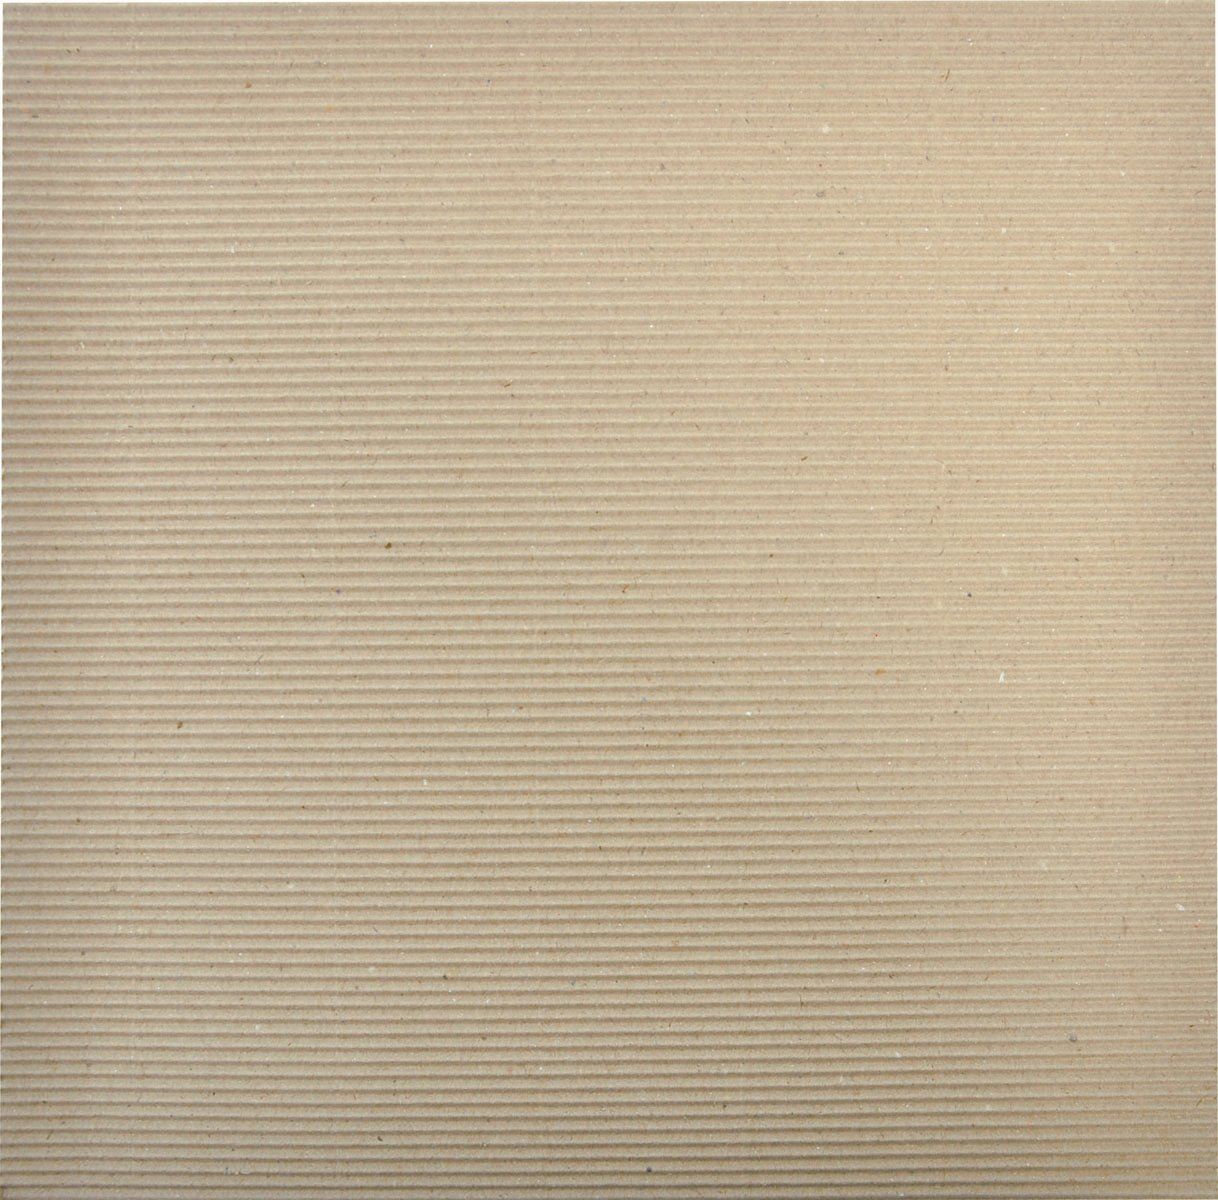 Kaisercraft CB153 Corrugated Cardboard Sheets, 12 by 12-Inch, 3-Pack by Kaisercraft (Image #1)